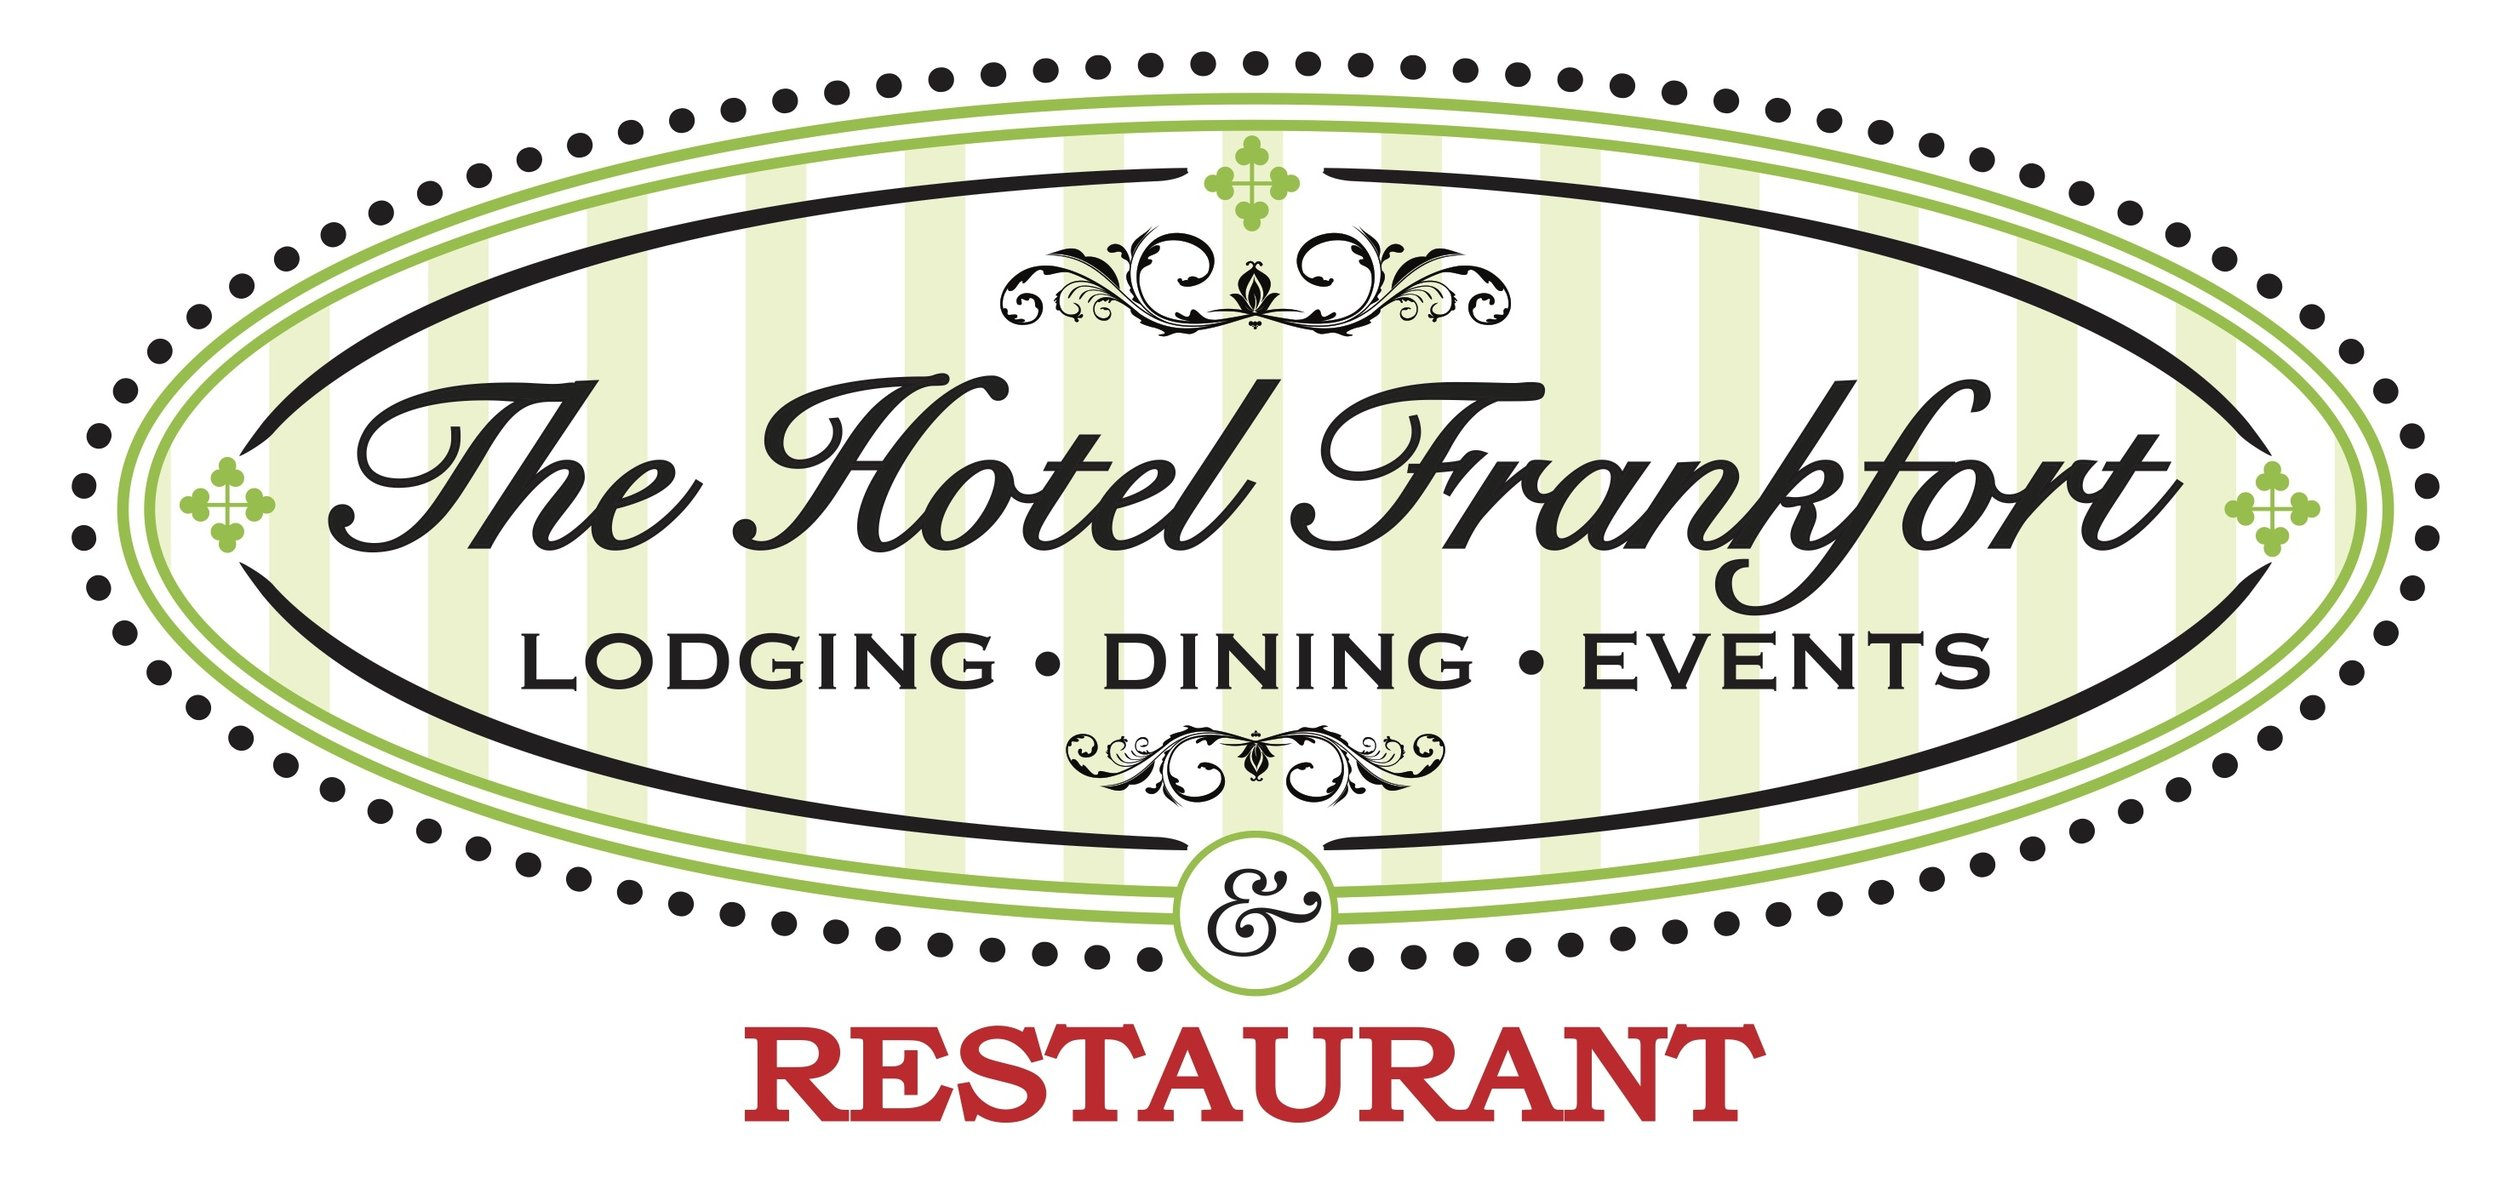 231 Main Street, Frankfort     3-Course Menu for One - $15    First Course  - Small Salad   Second Course  - Choice of One Entrée: Pot Pie, Meatloaf, Fried Chicken, or Pork Steak   Third Course  - House Dessert